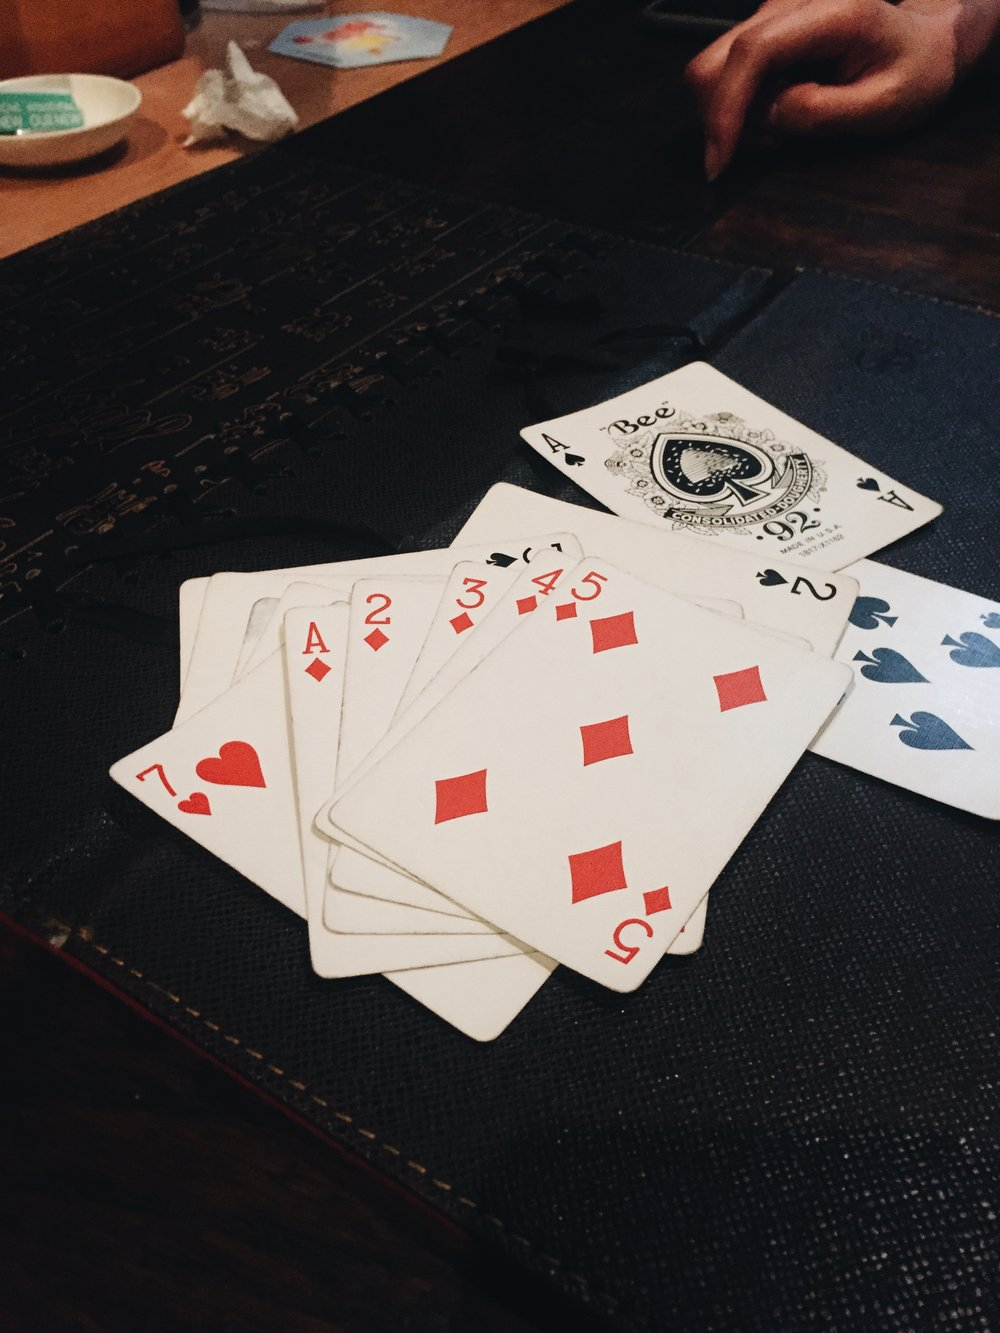 Played Poker after seeing Joyce's concert and this happened.